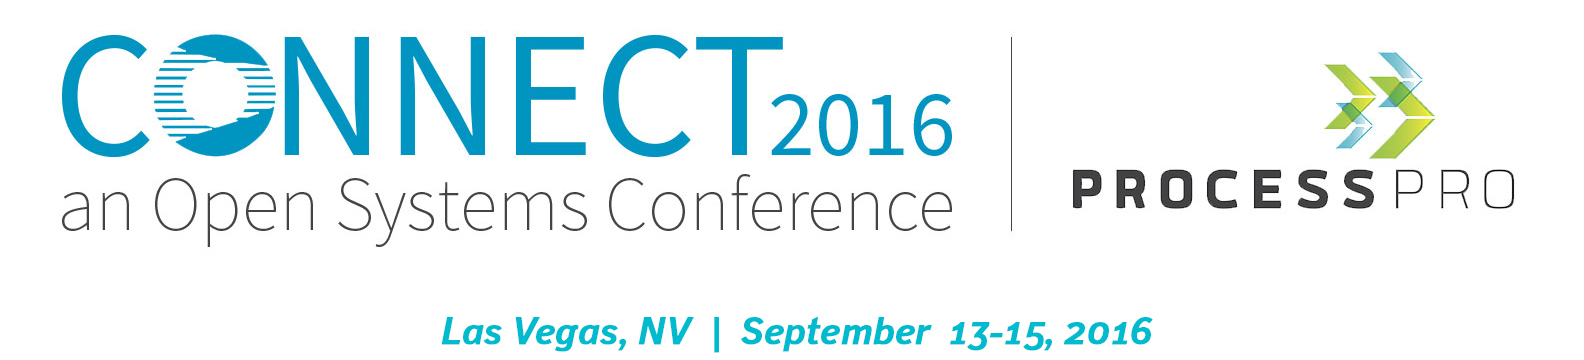 Connect User Conference 2016